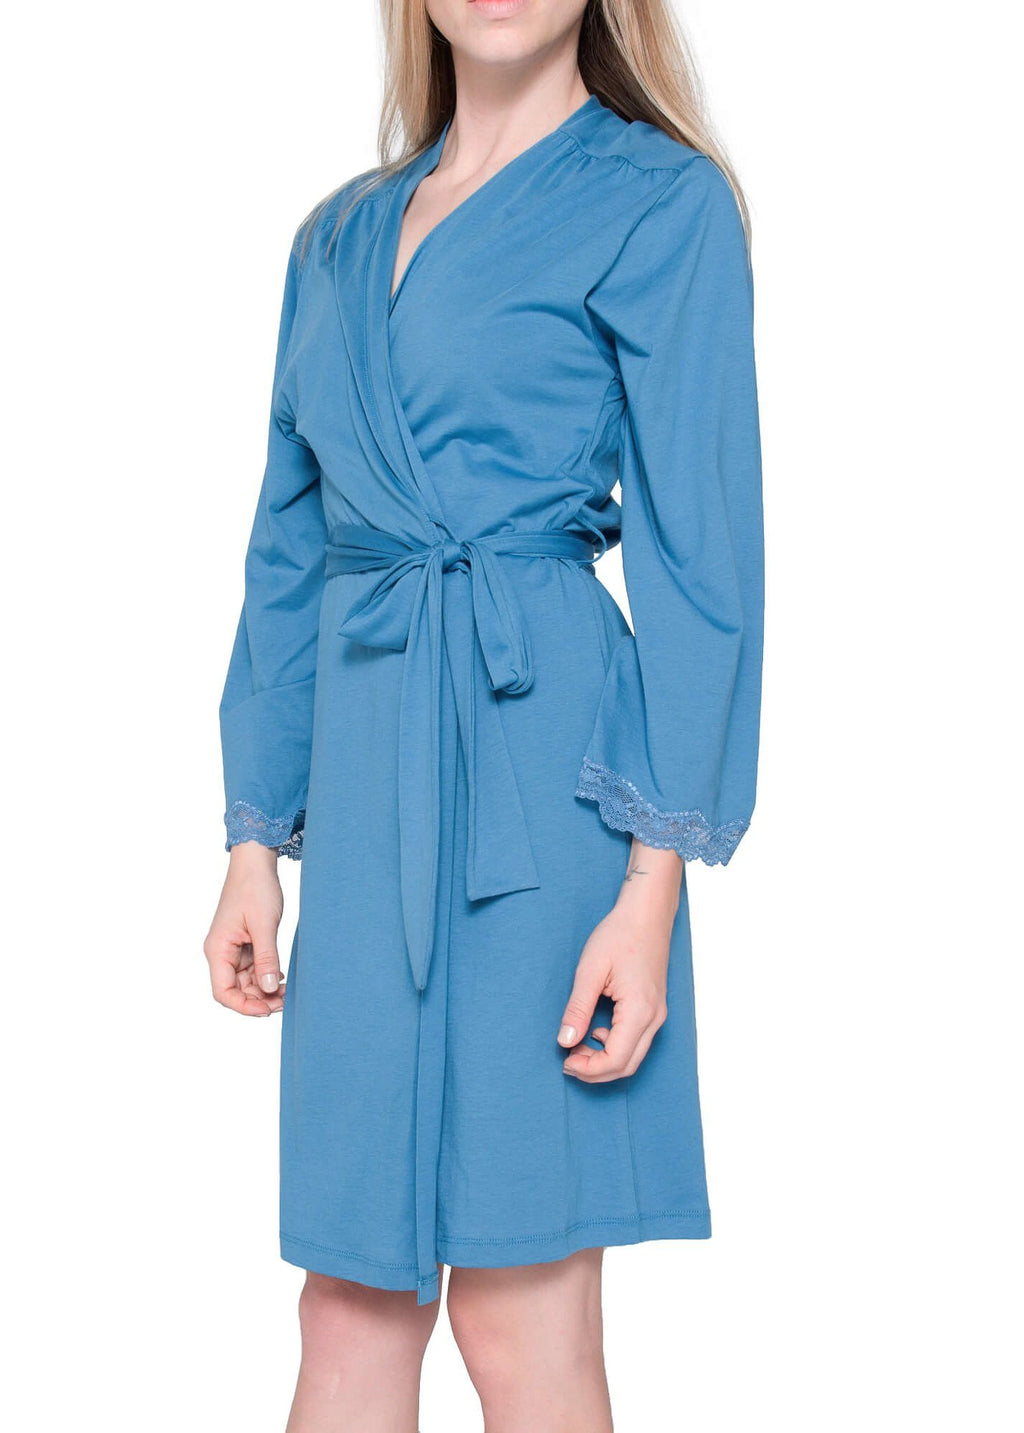 Carman Short Robe - Slate Blue Mystique Intimates